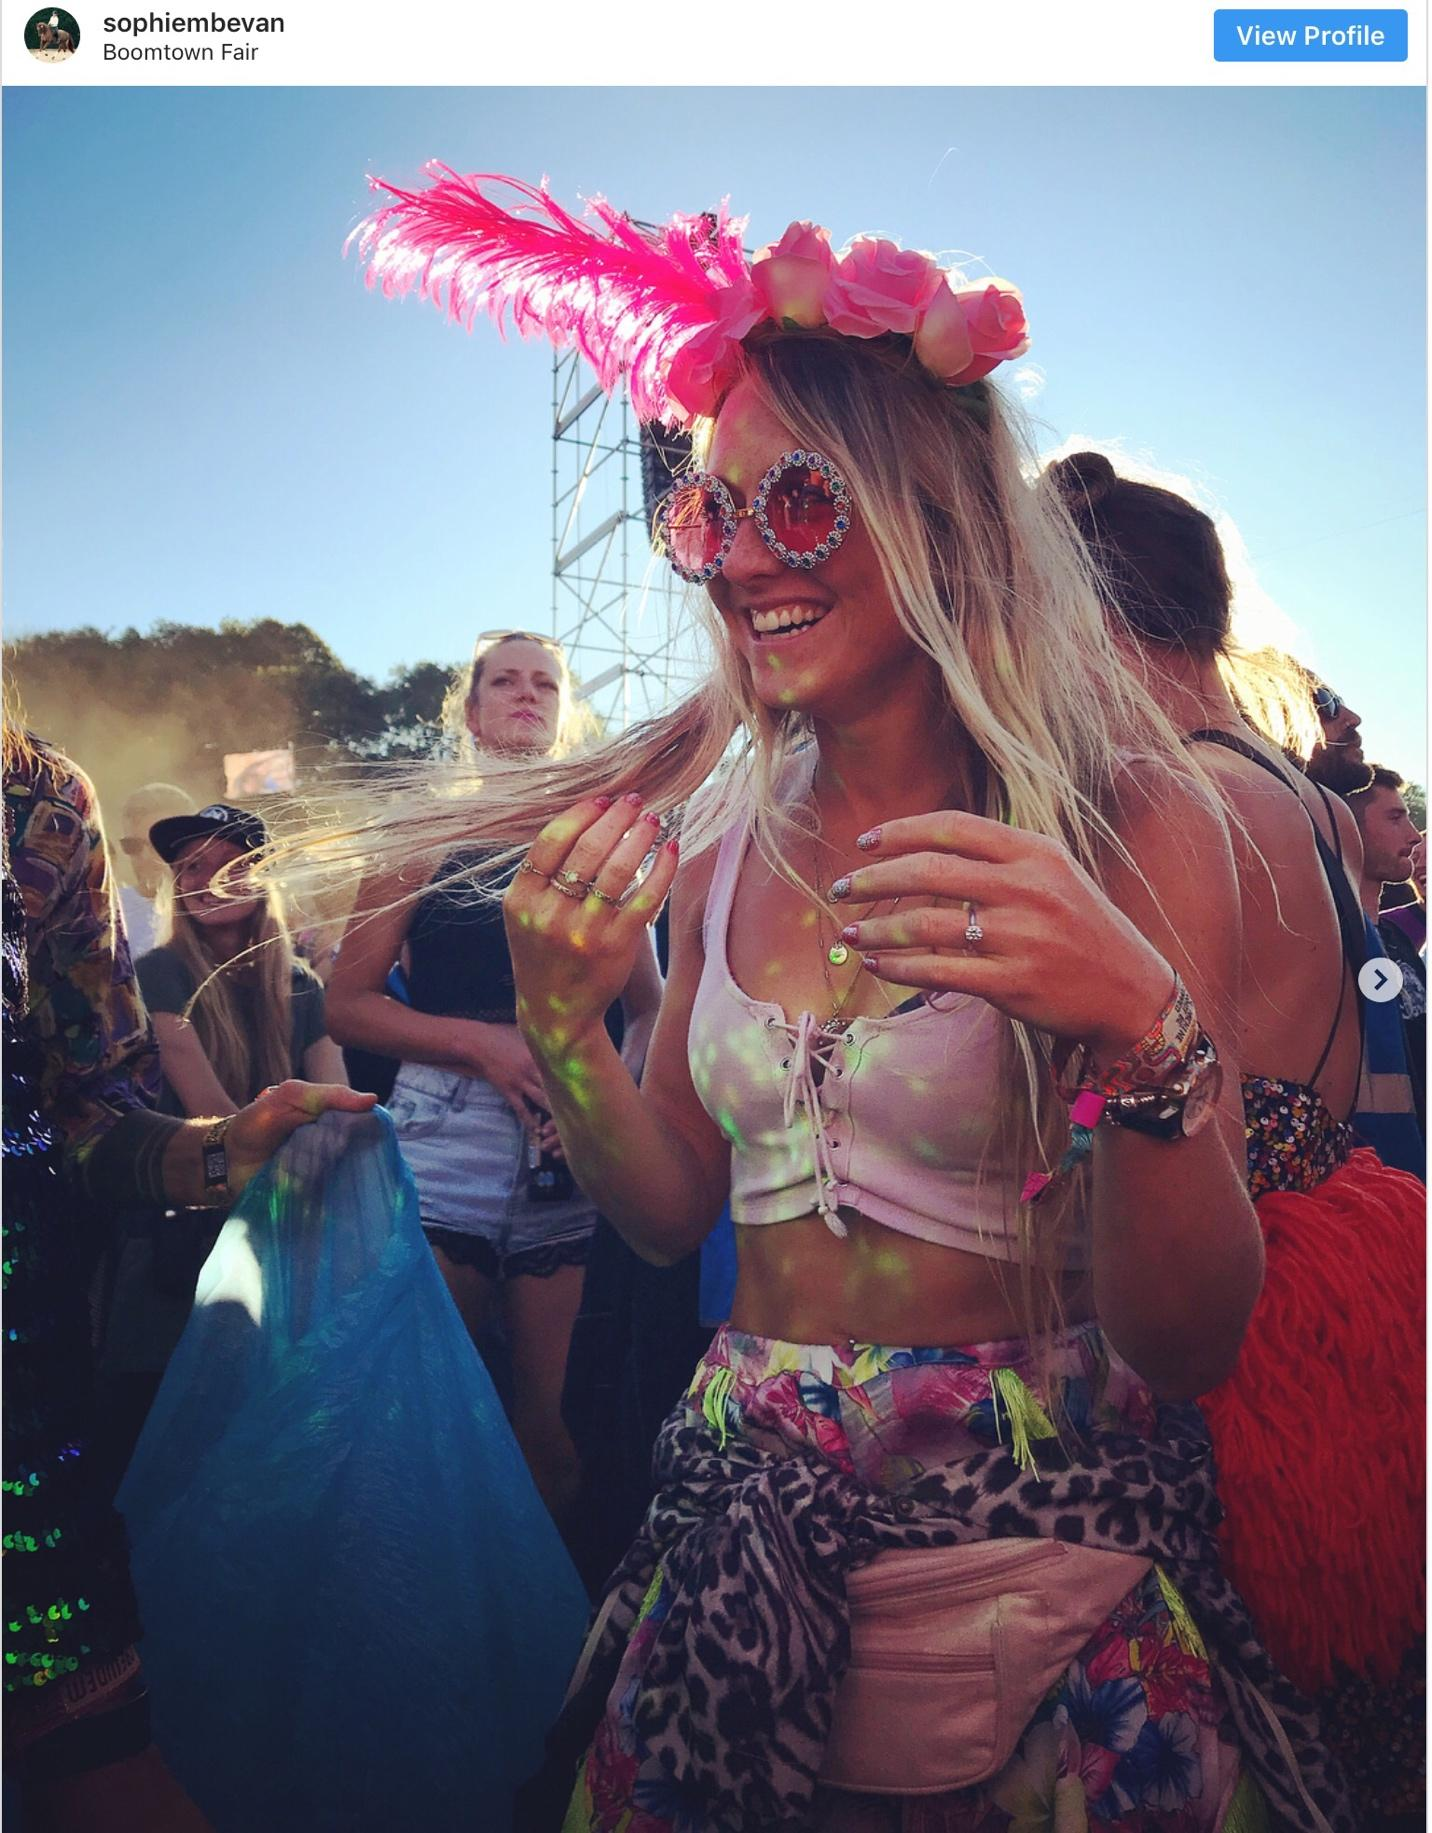 20-craziest-festival-outfits-that-students-rocked-in-summer-2018-3.jpg